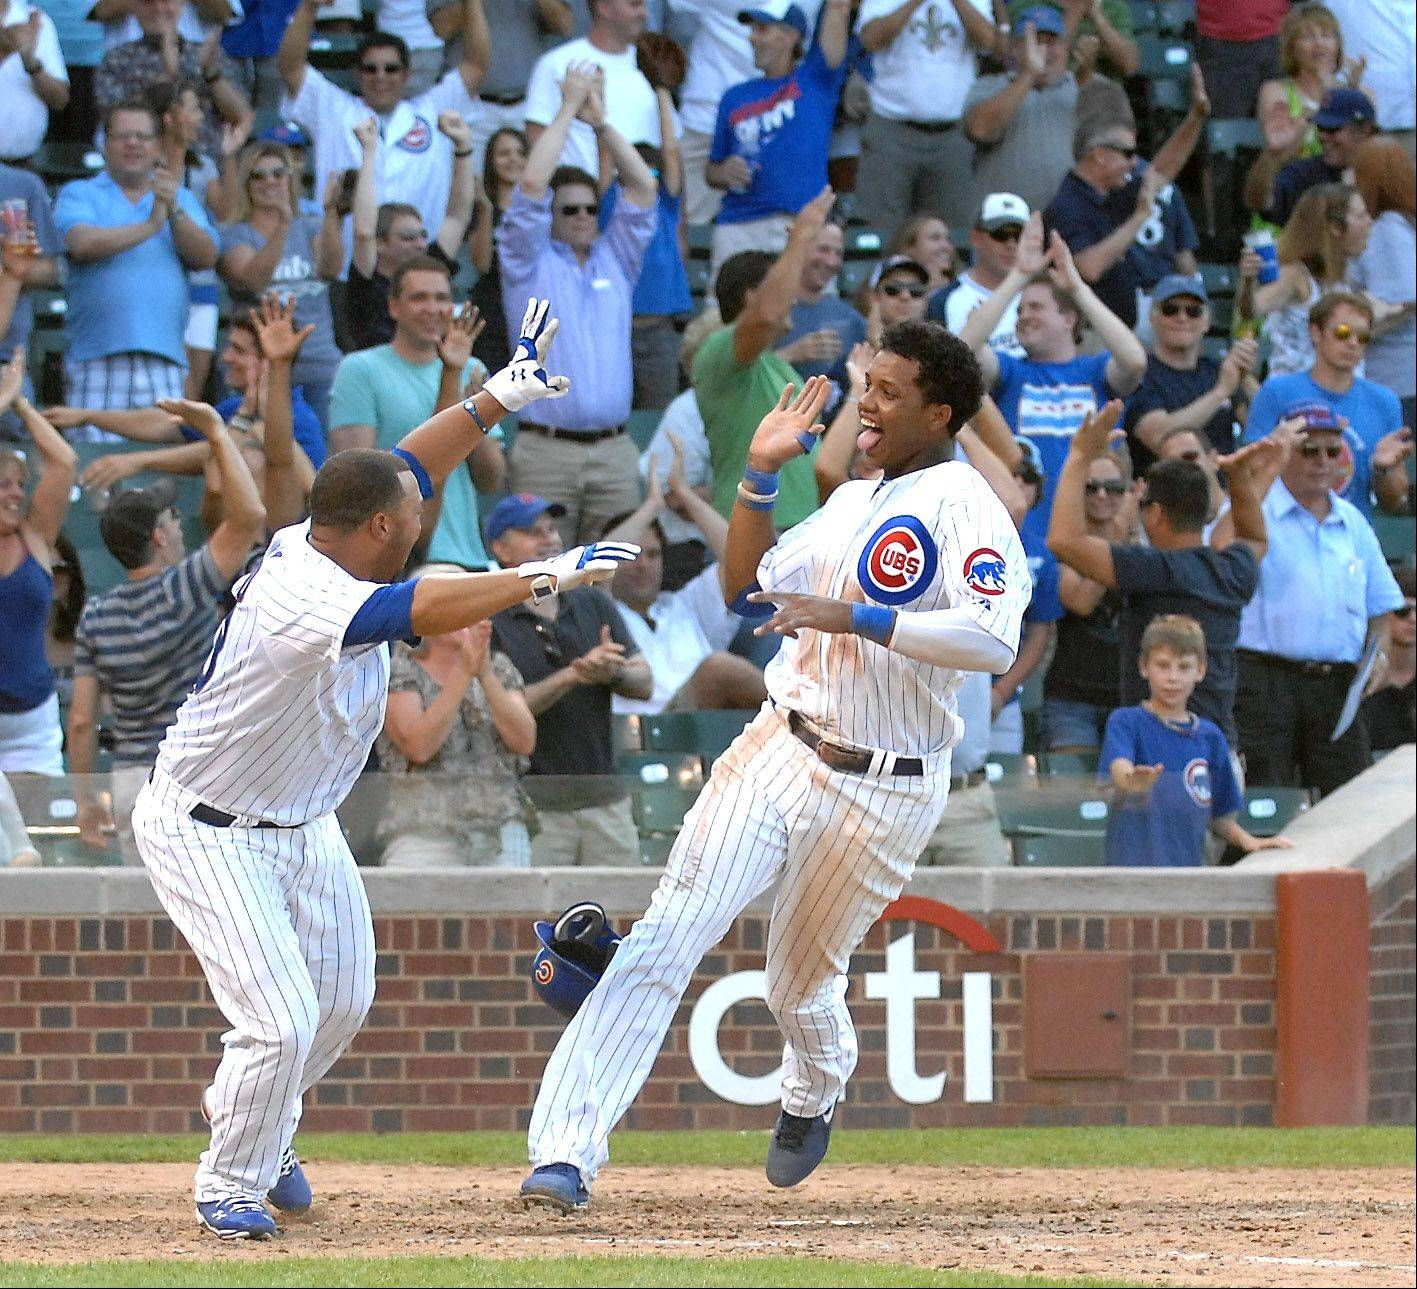 Castro, Cubs hungry for more